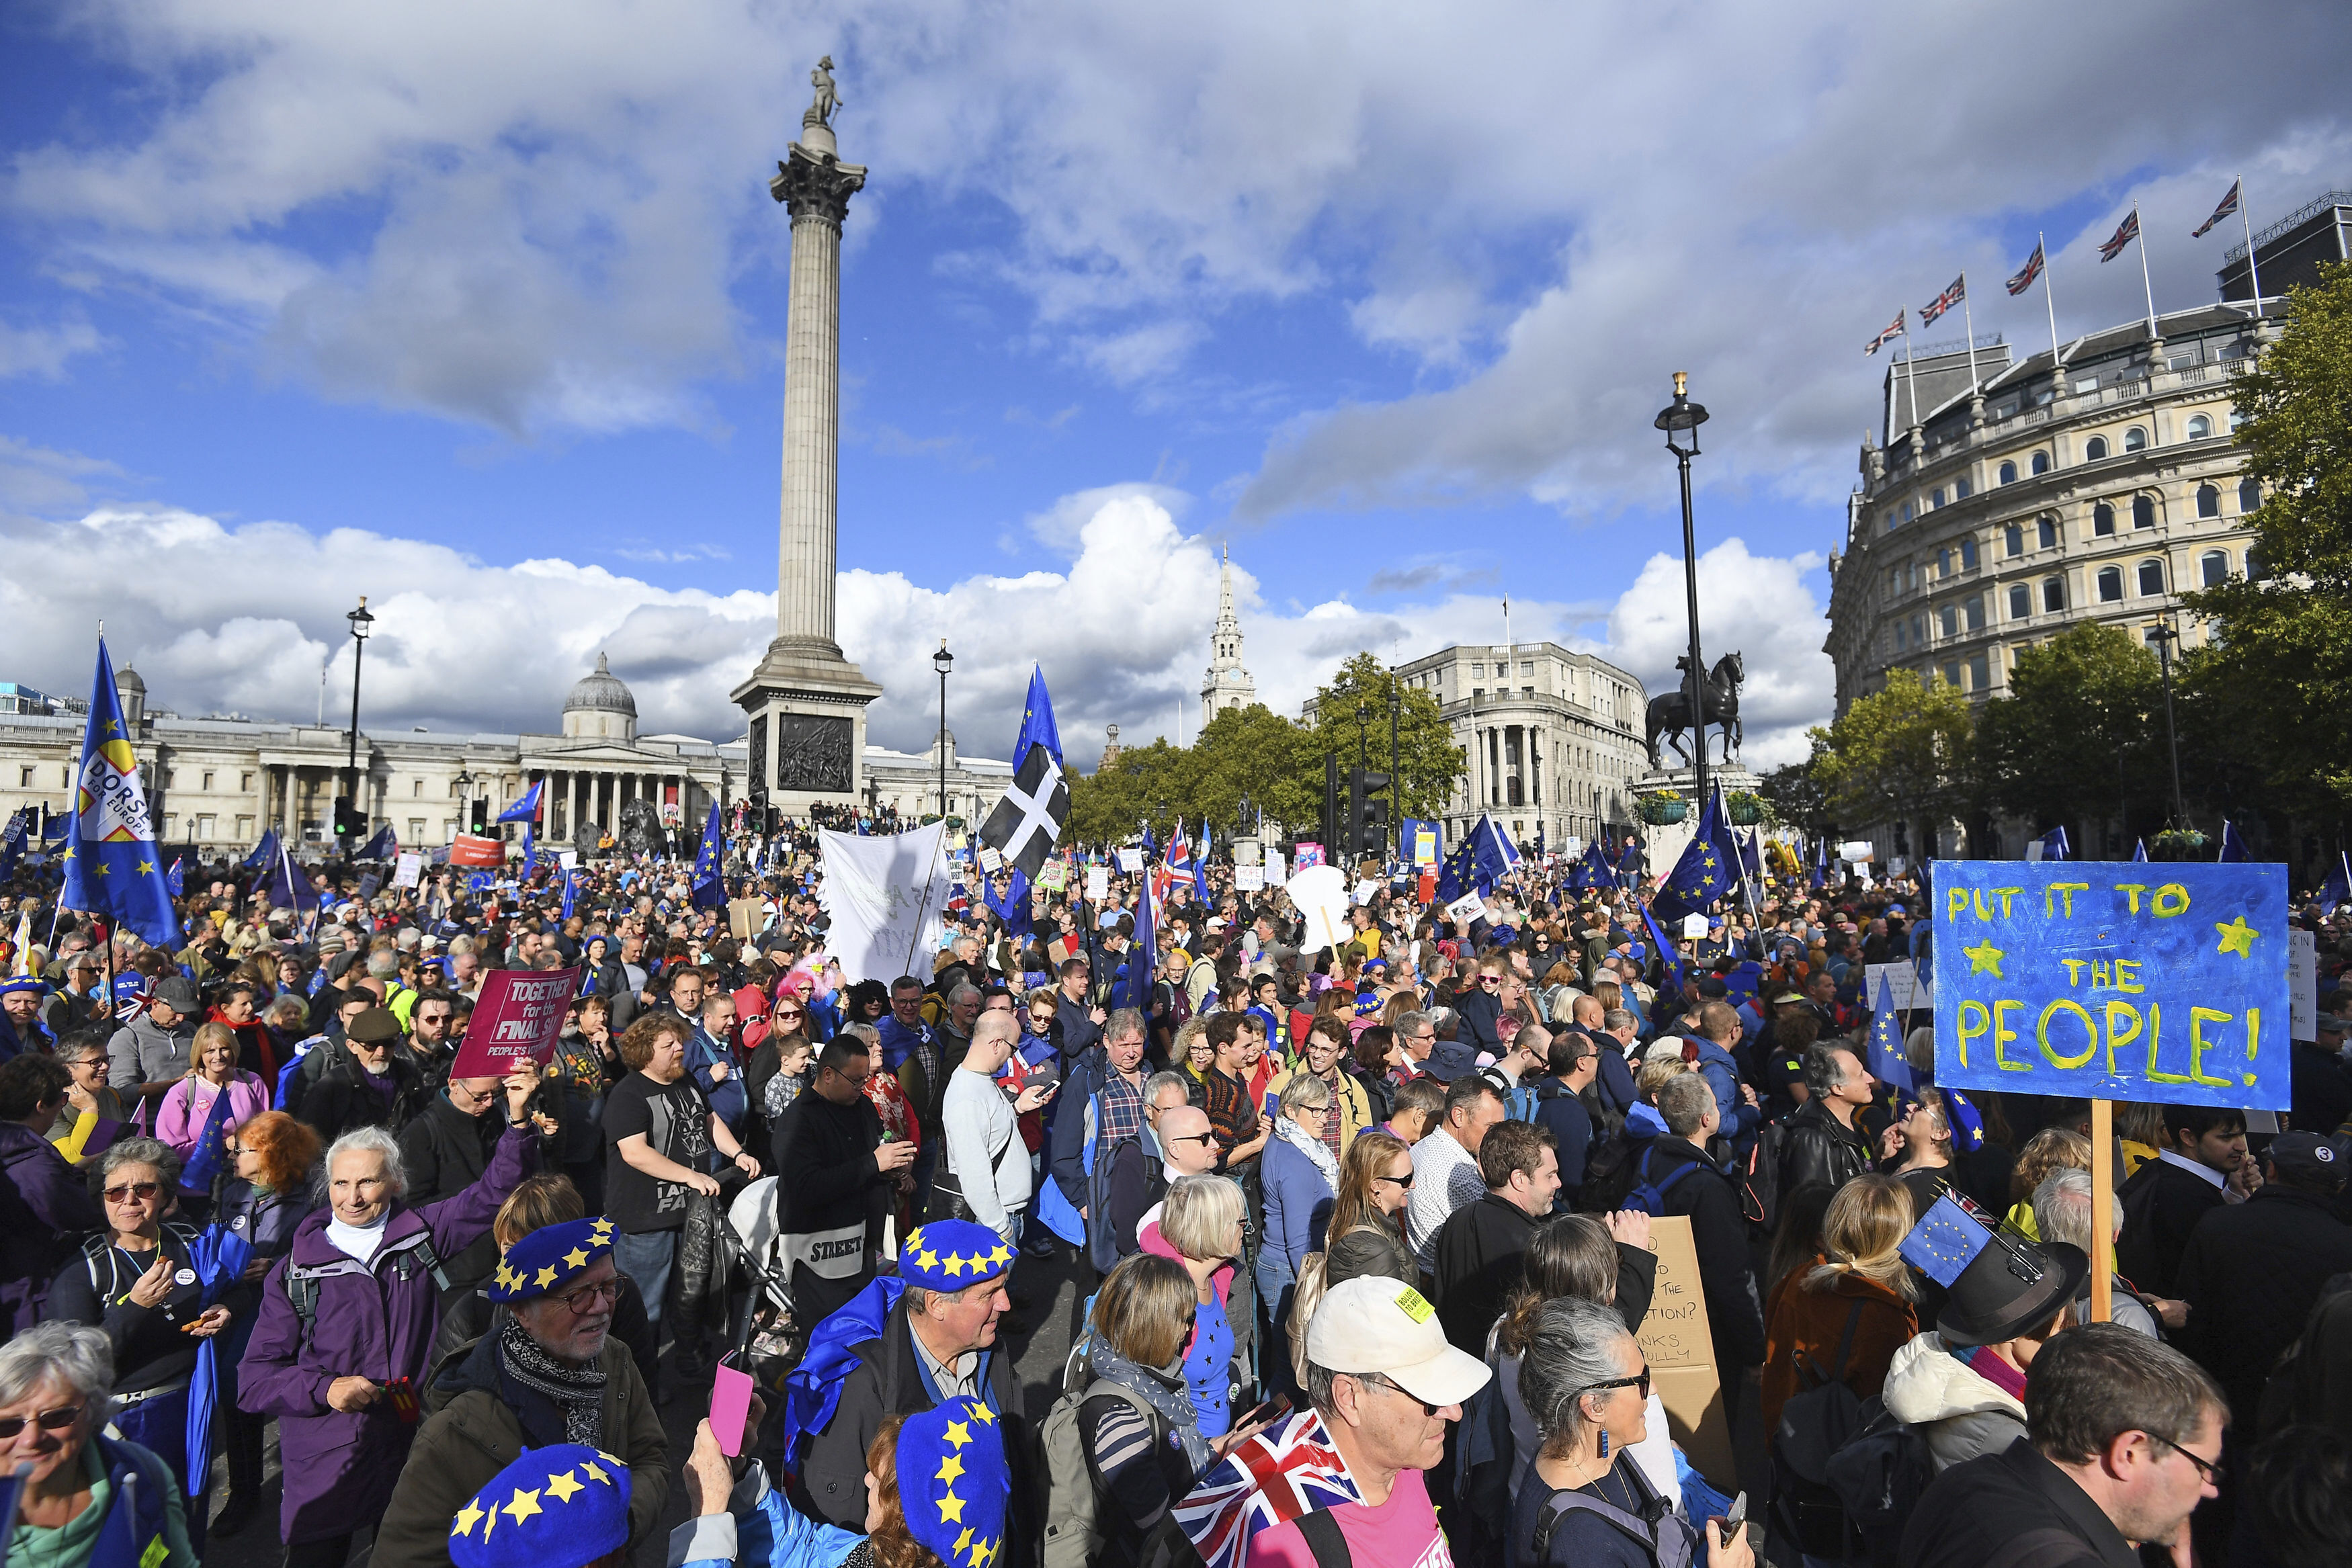 Anti-Brexit supporters during a protest march through Trafalgar Square in London, on October 19, 2019